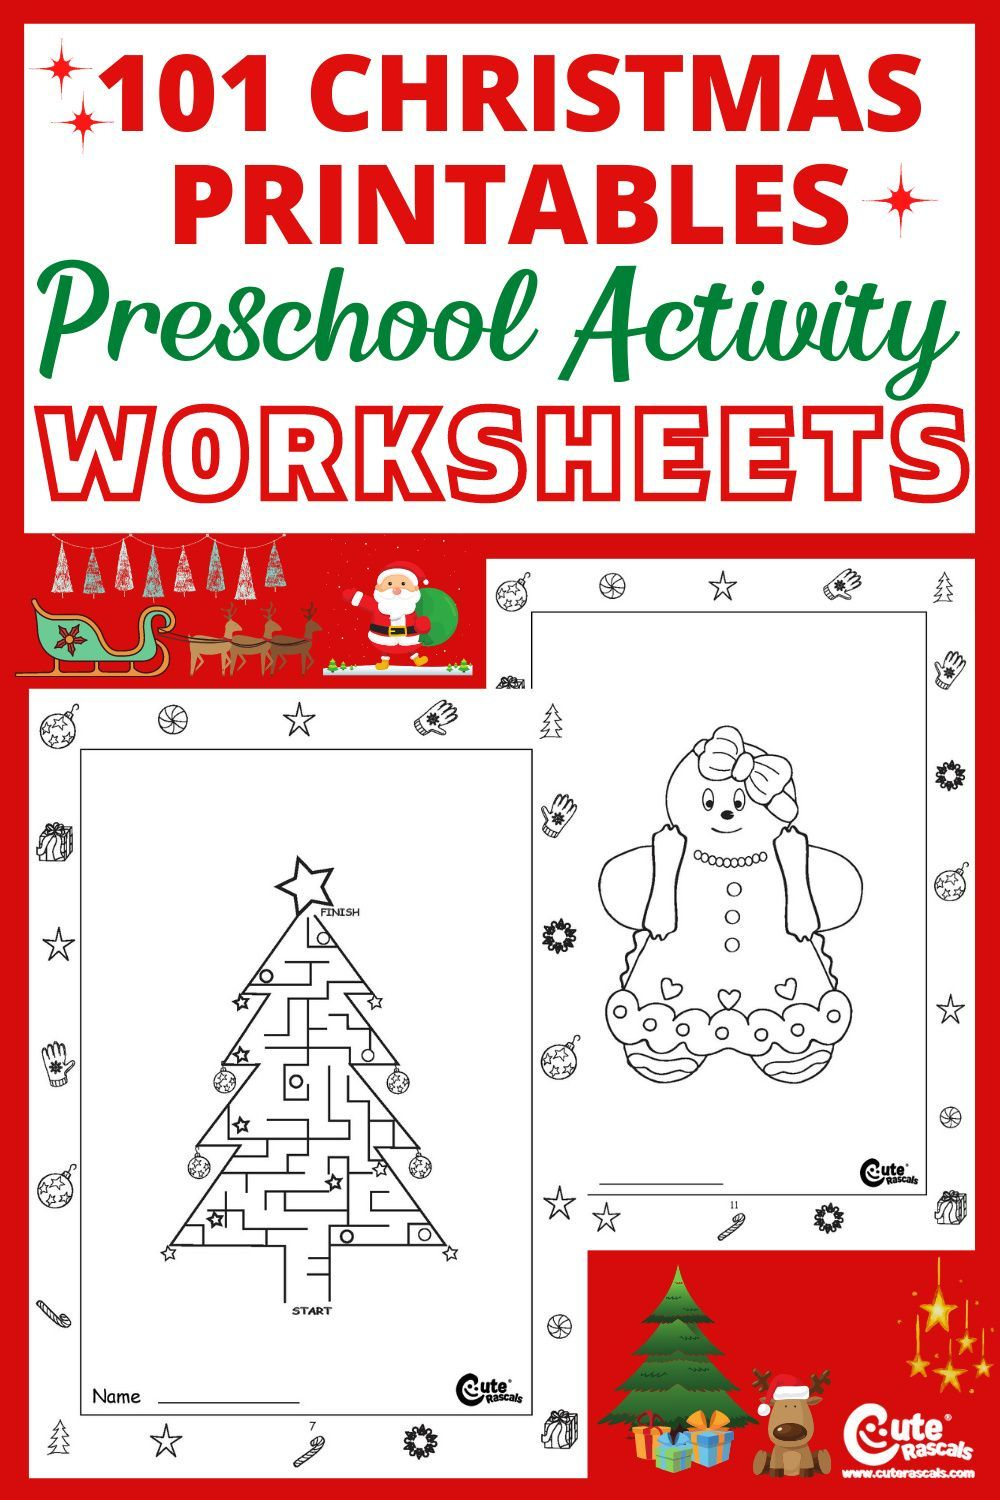 101 Pages Of Fun Free Printable Christmas Activity Worksheets For Preschoolers Christmas Activities Free Christmas Printables Fun Christmas Activities [ 1500 x 1000 Pixel ]